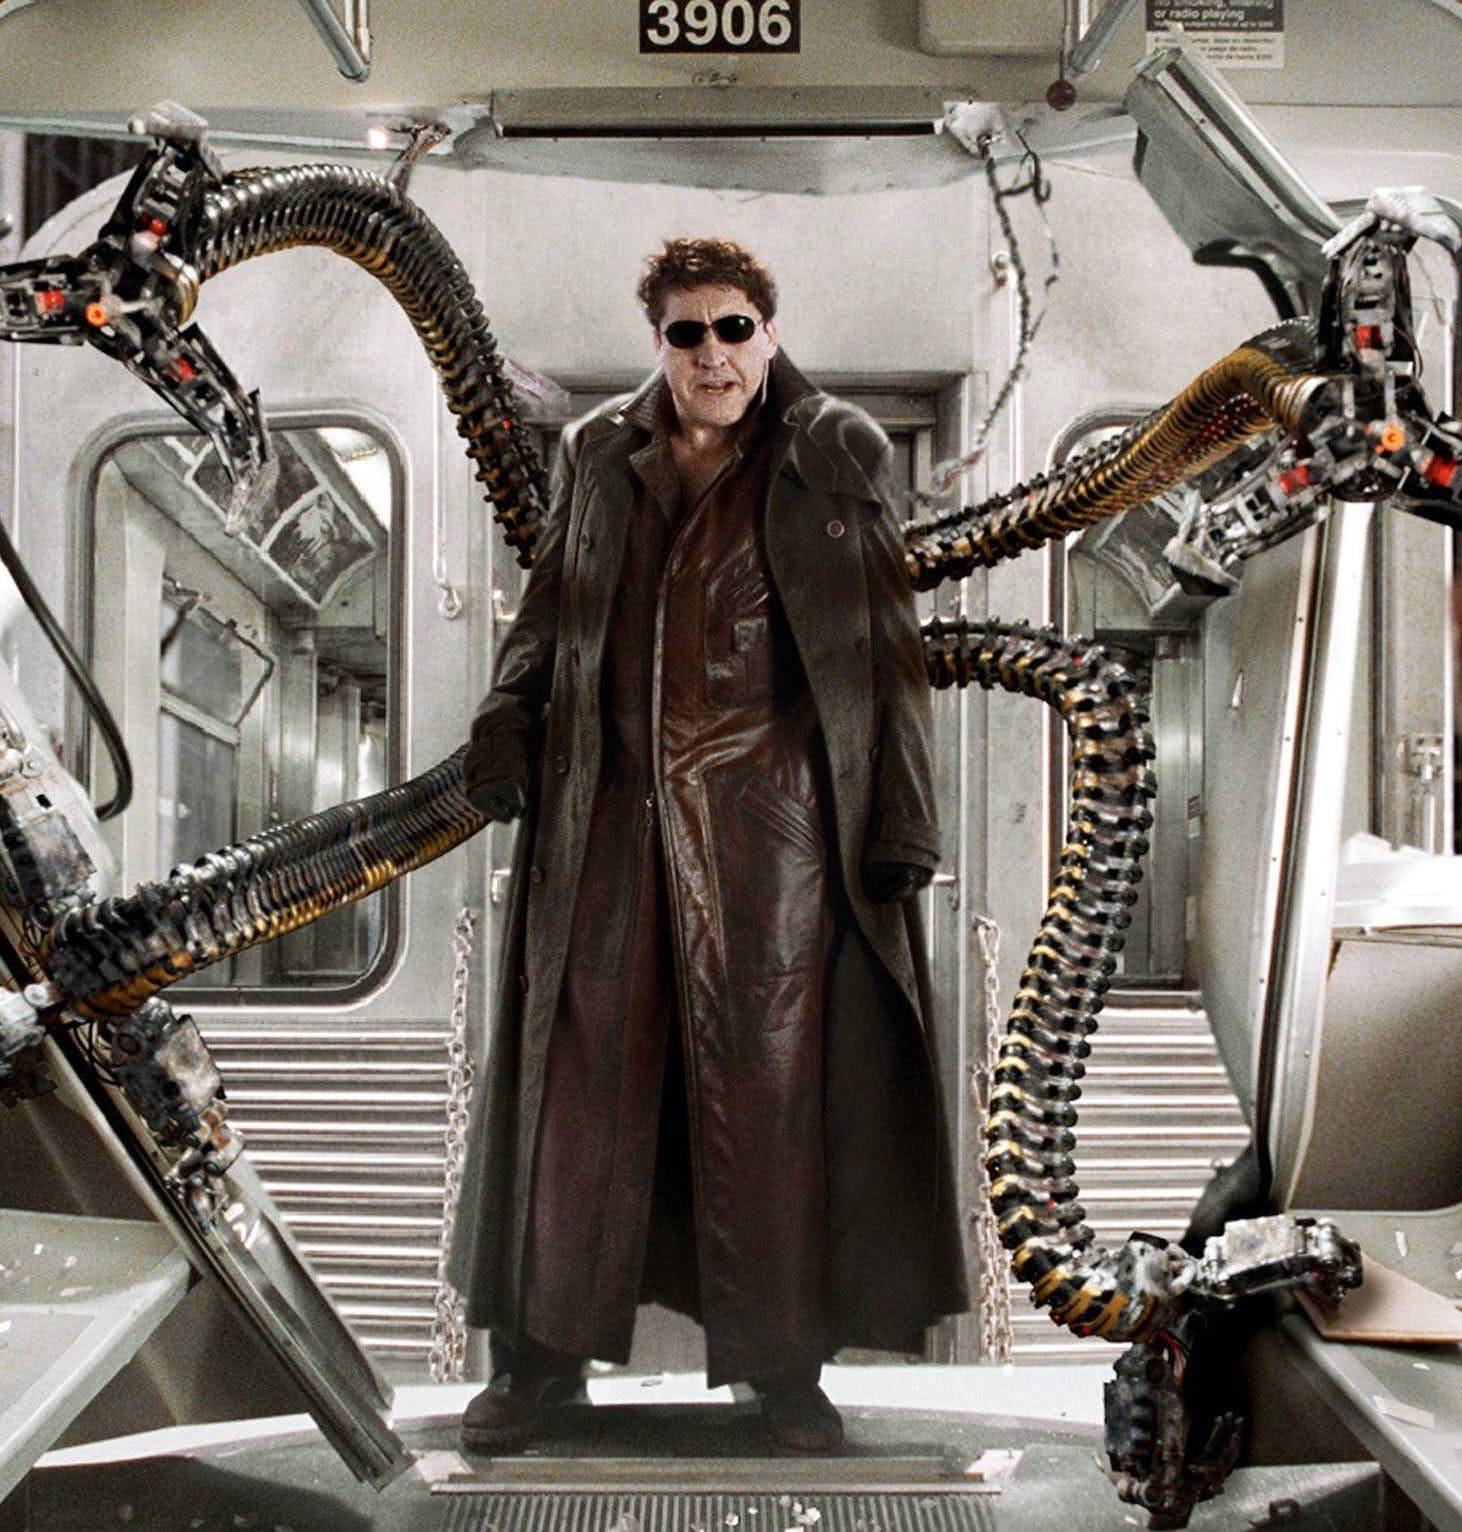 Spider Man 2 Alfred Molina Doc Ock Doctor Octopus Train Scene 27 Things You Didn't Know About The Spider-Man Films